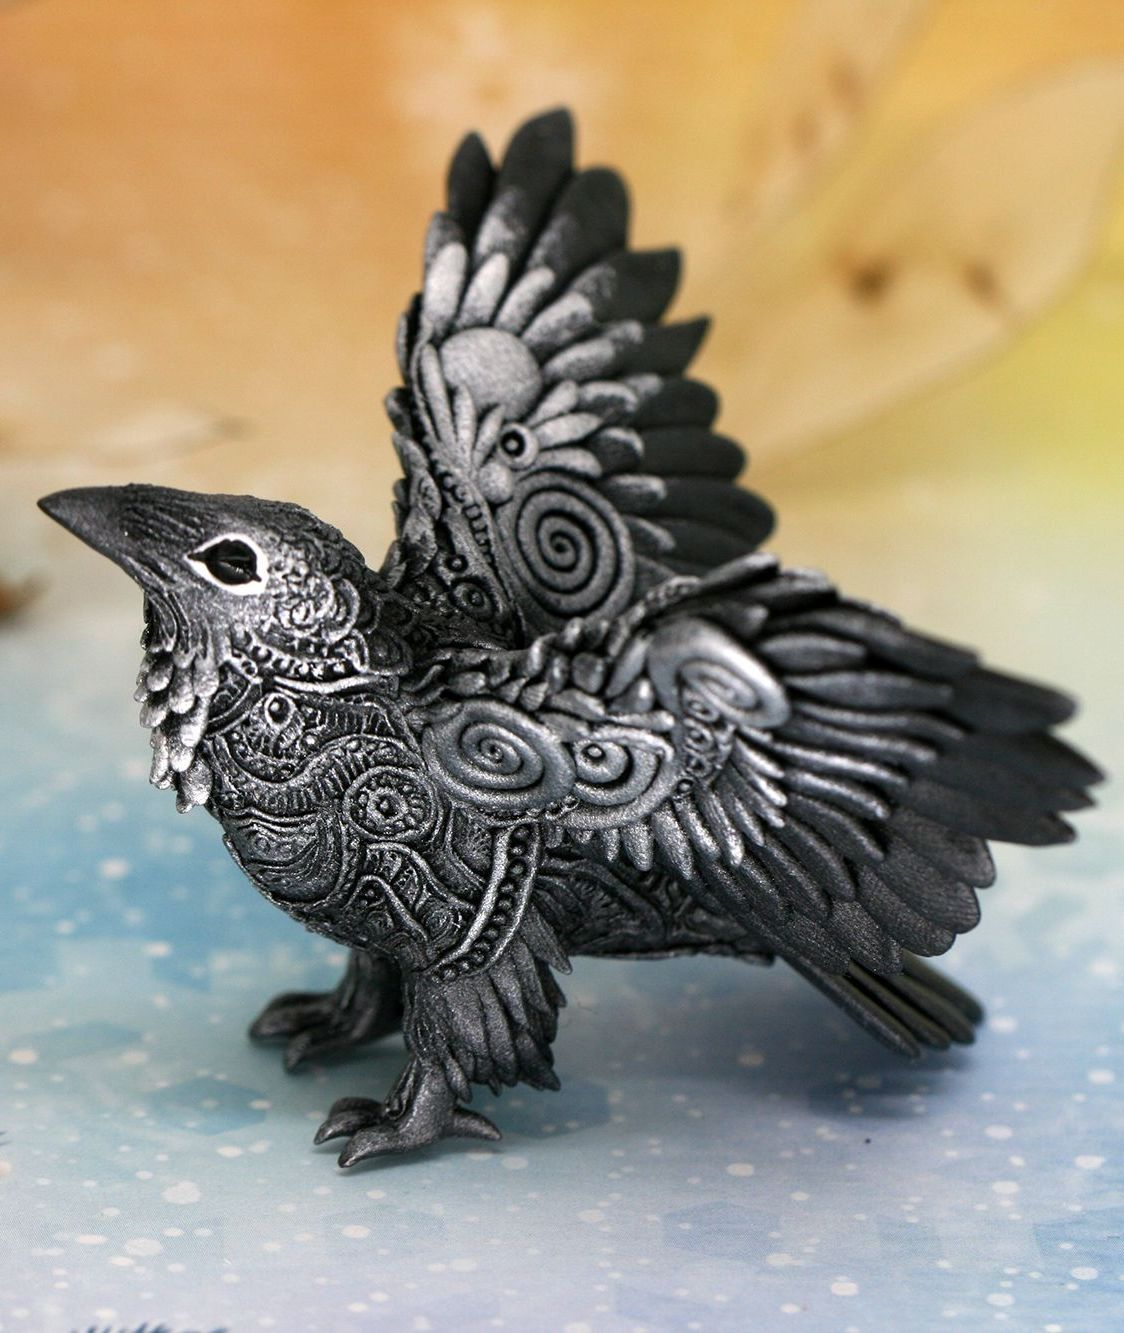 Download Raven Figurine for shelf and office table decoration by Evgeny Hontor 👆 in 2020   Clay figurine ...